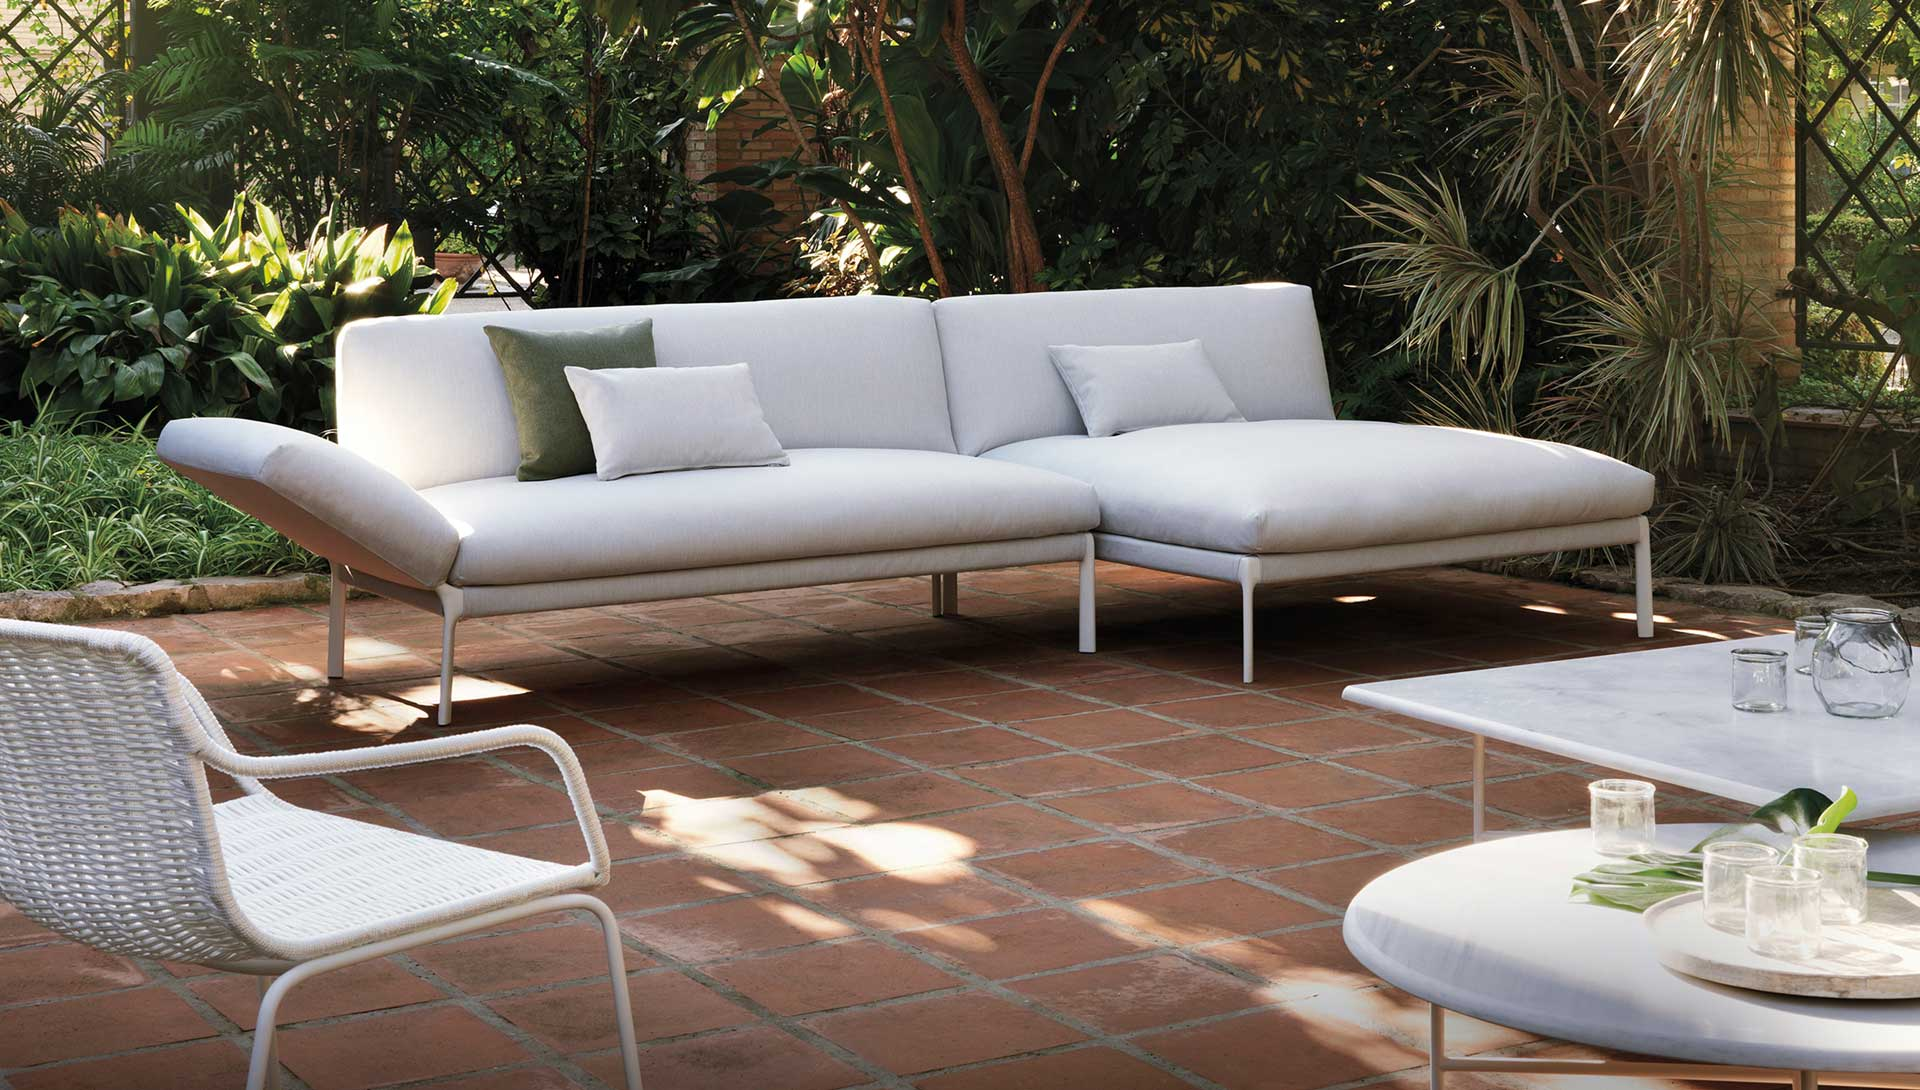 Charmant Outdoor Furniture